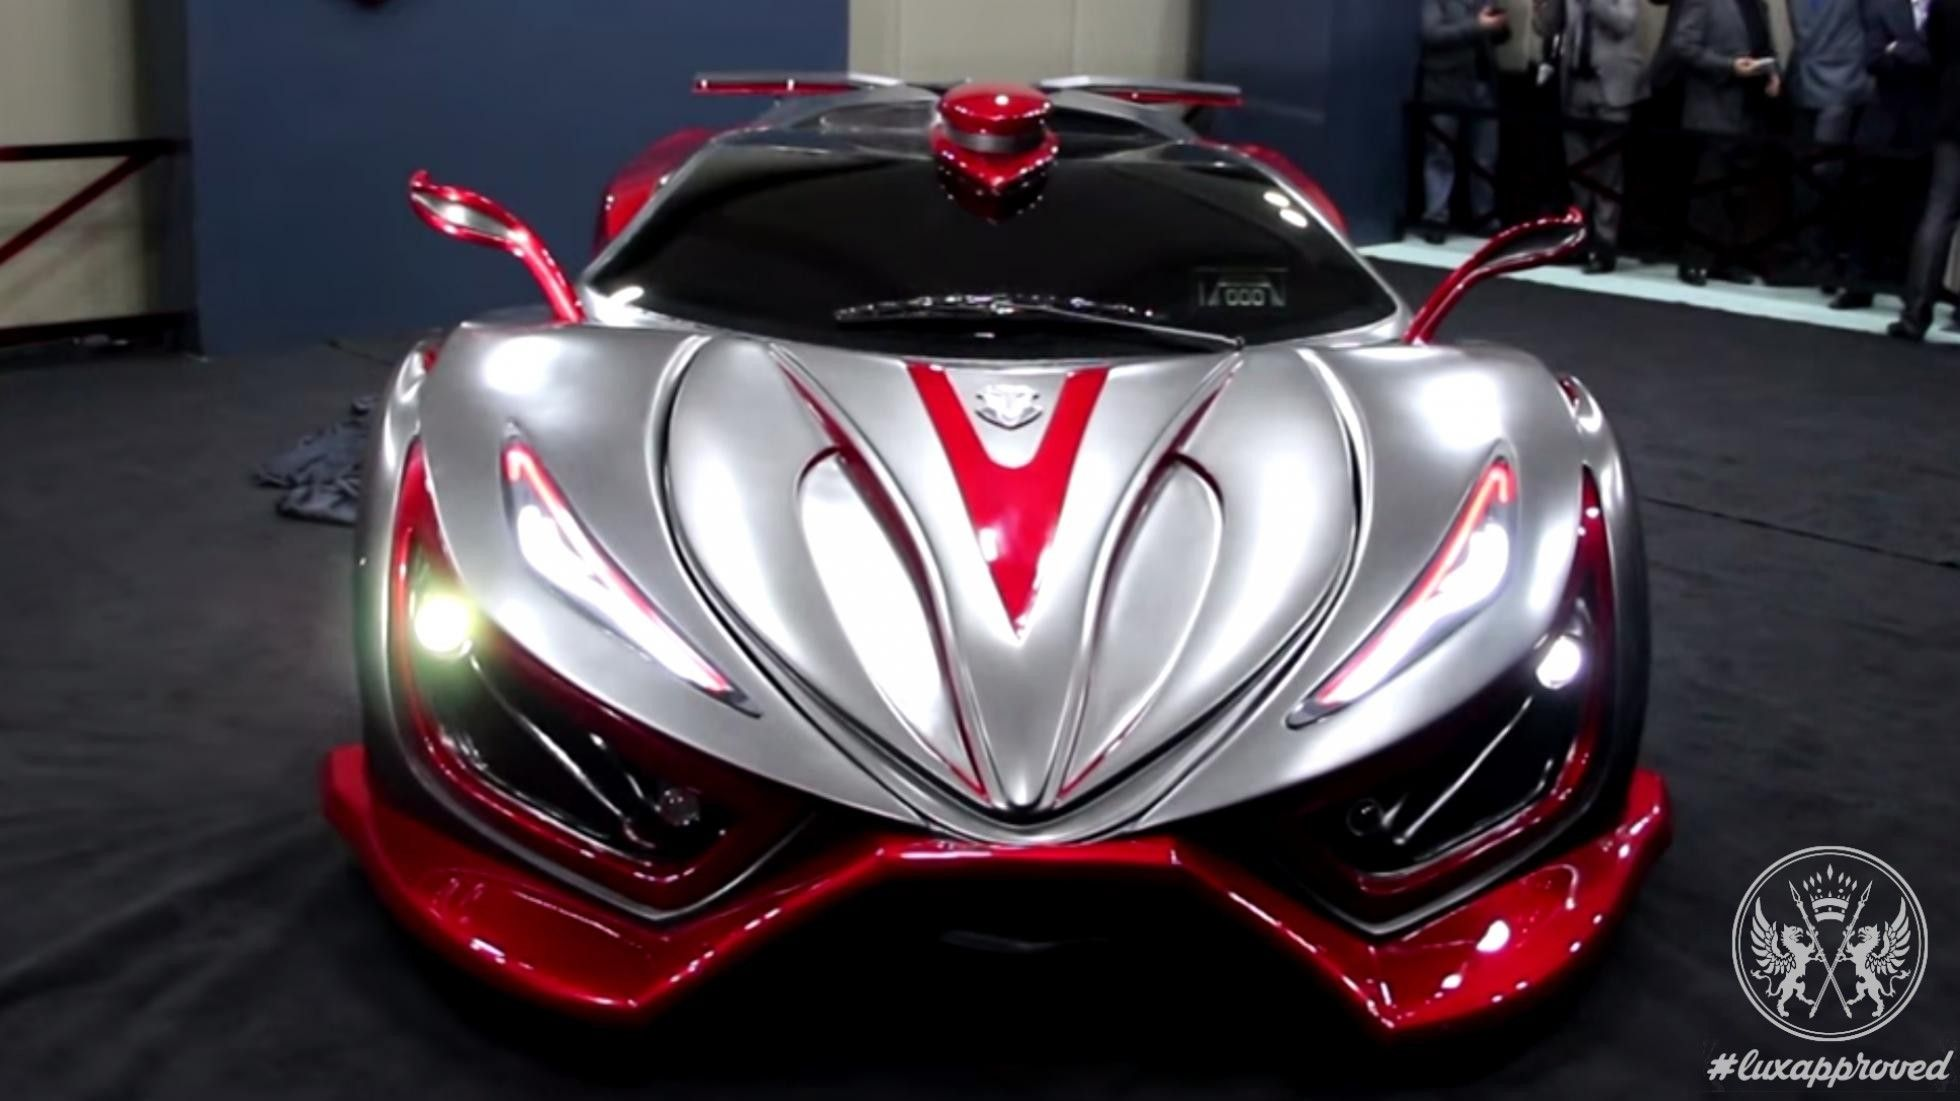 'Inferno' supercar Mexico's 1400 hp monster is something that el diablo would drive